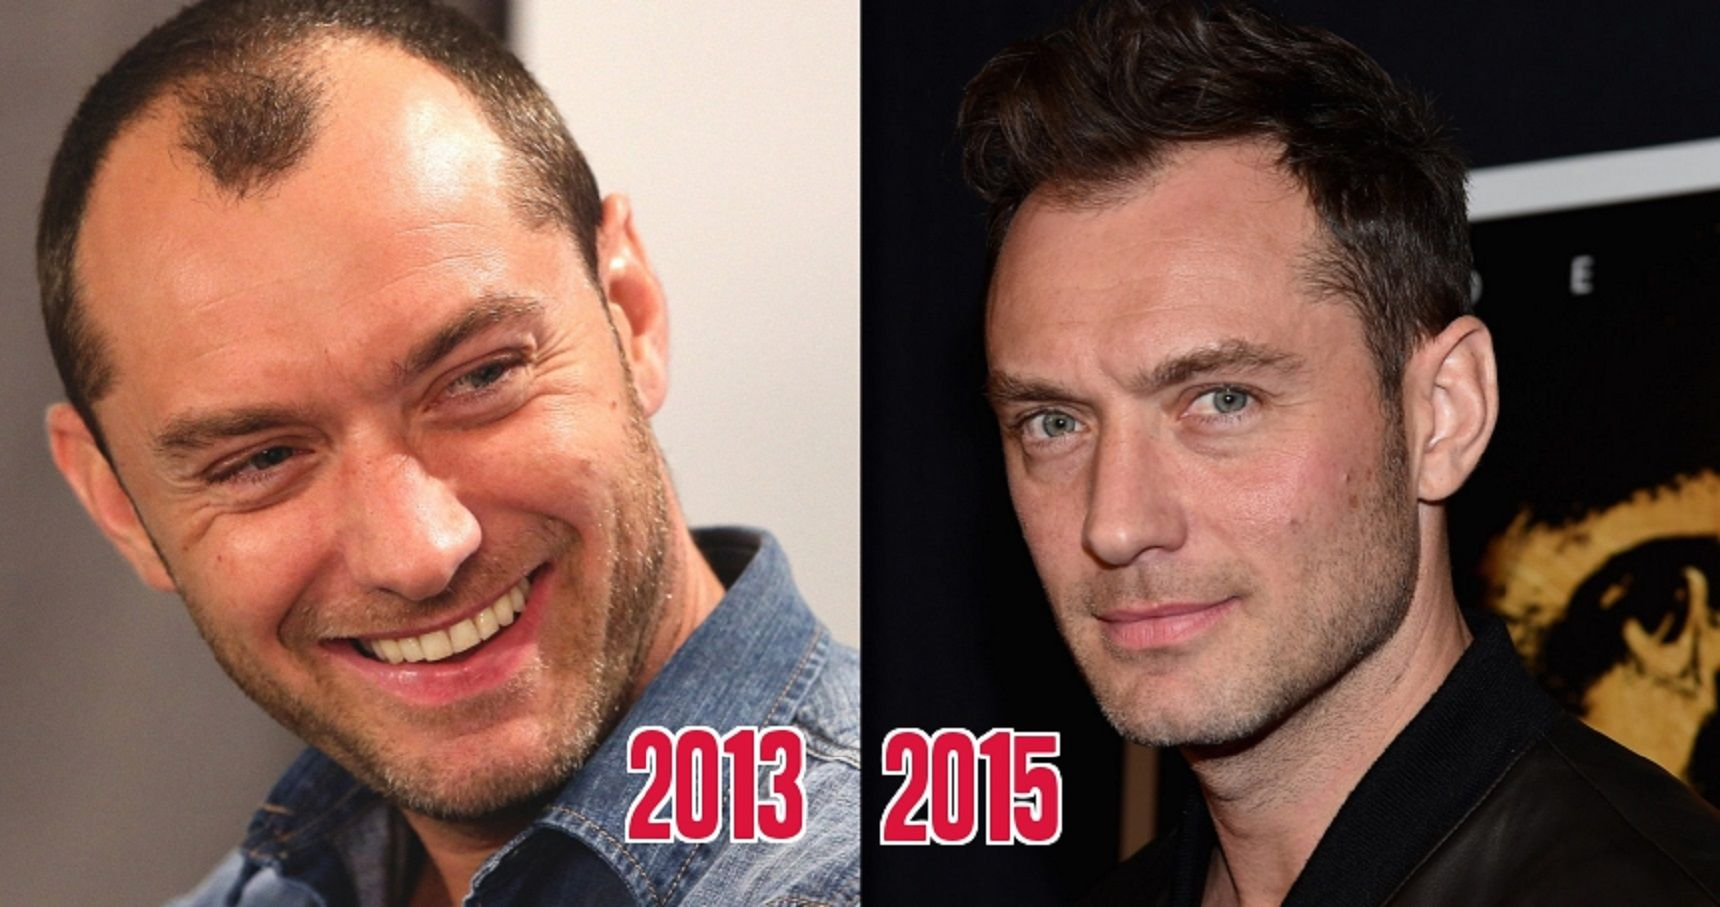 10 Celebs Who Are Suspiciously No Longer Bald(ing)